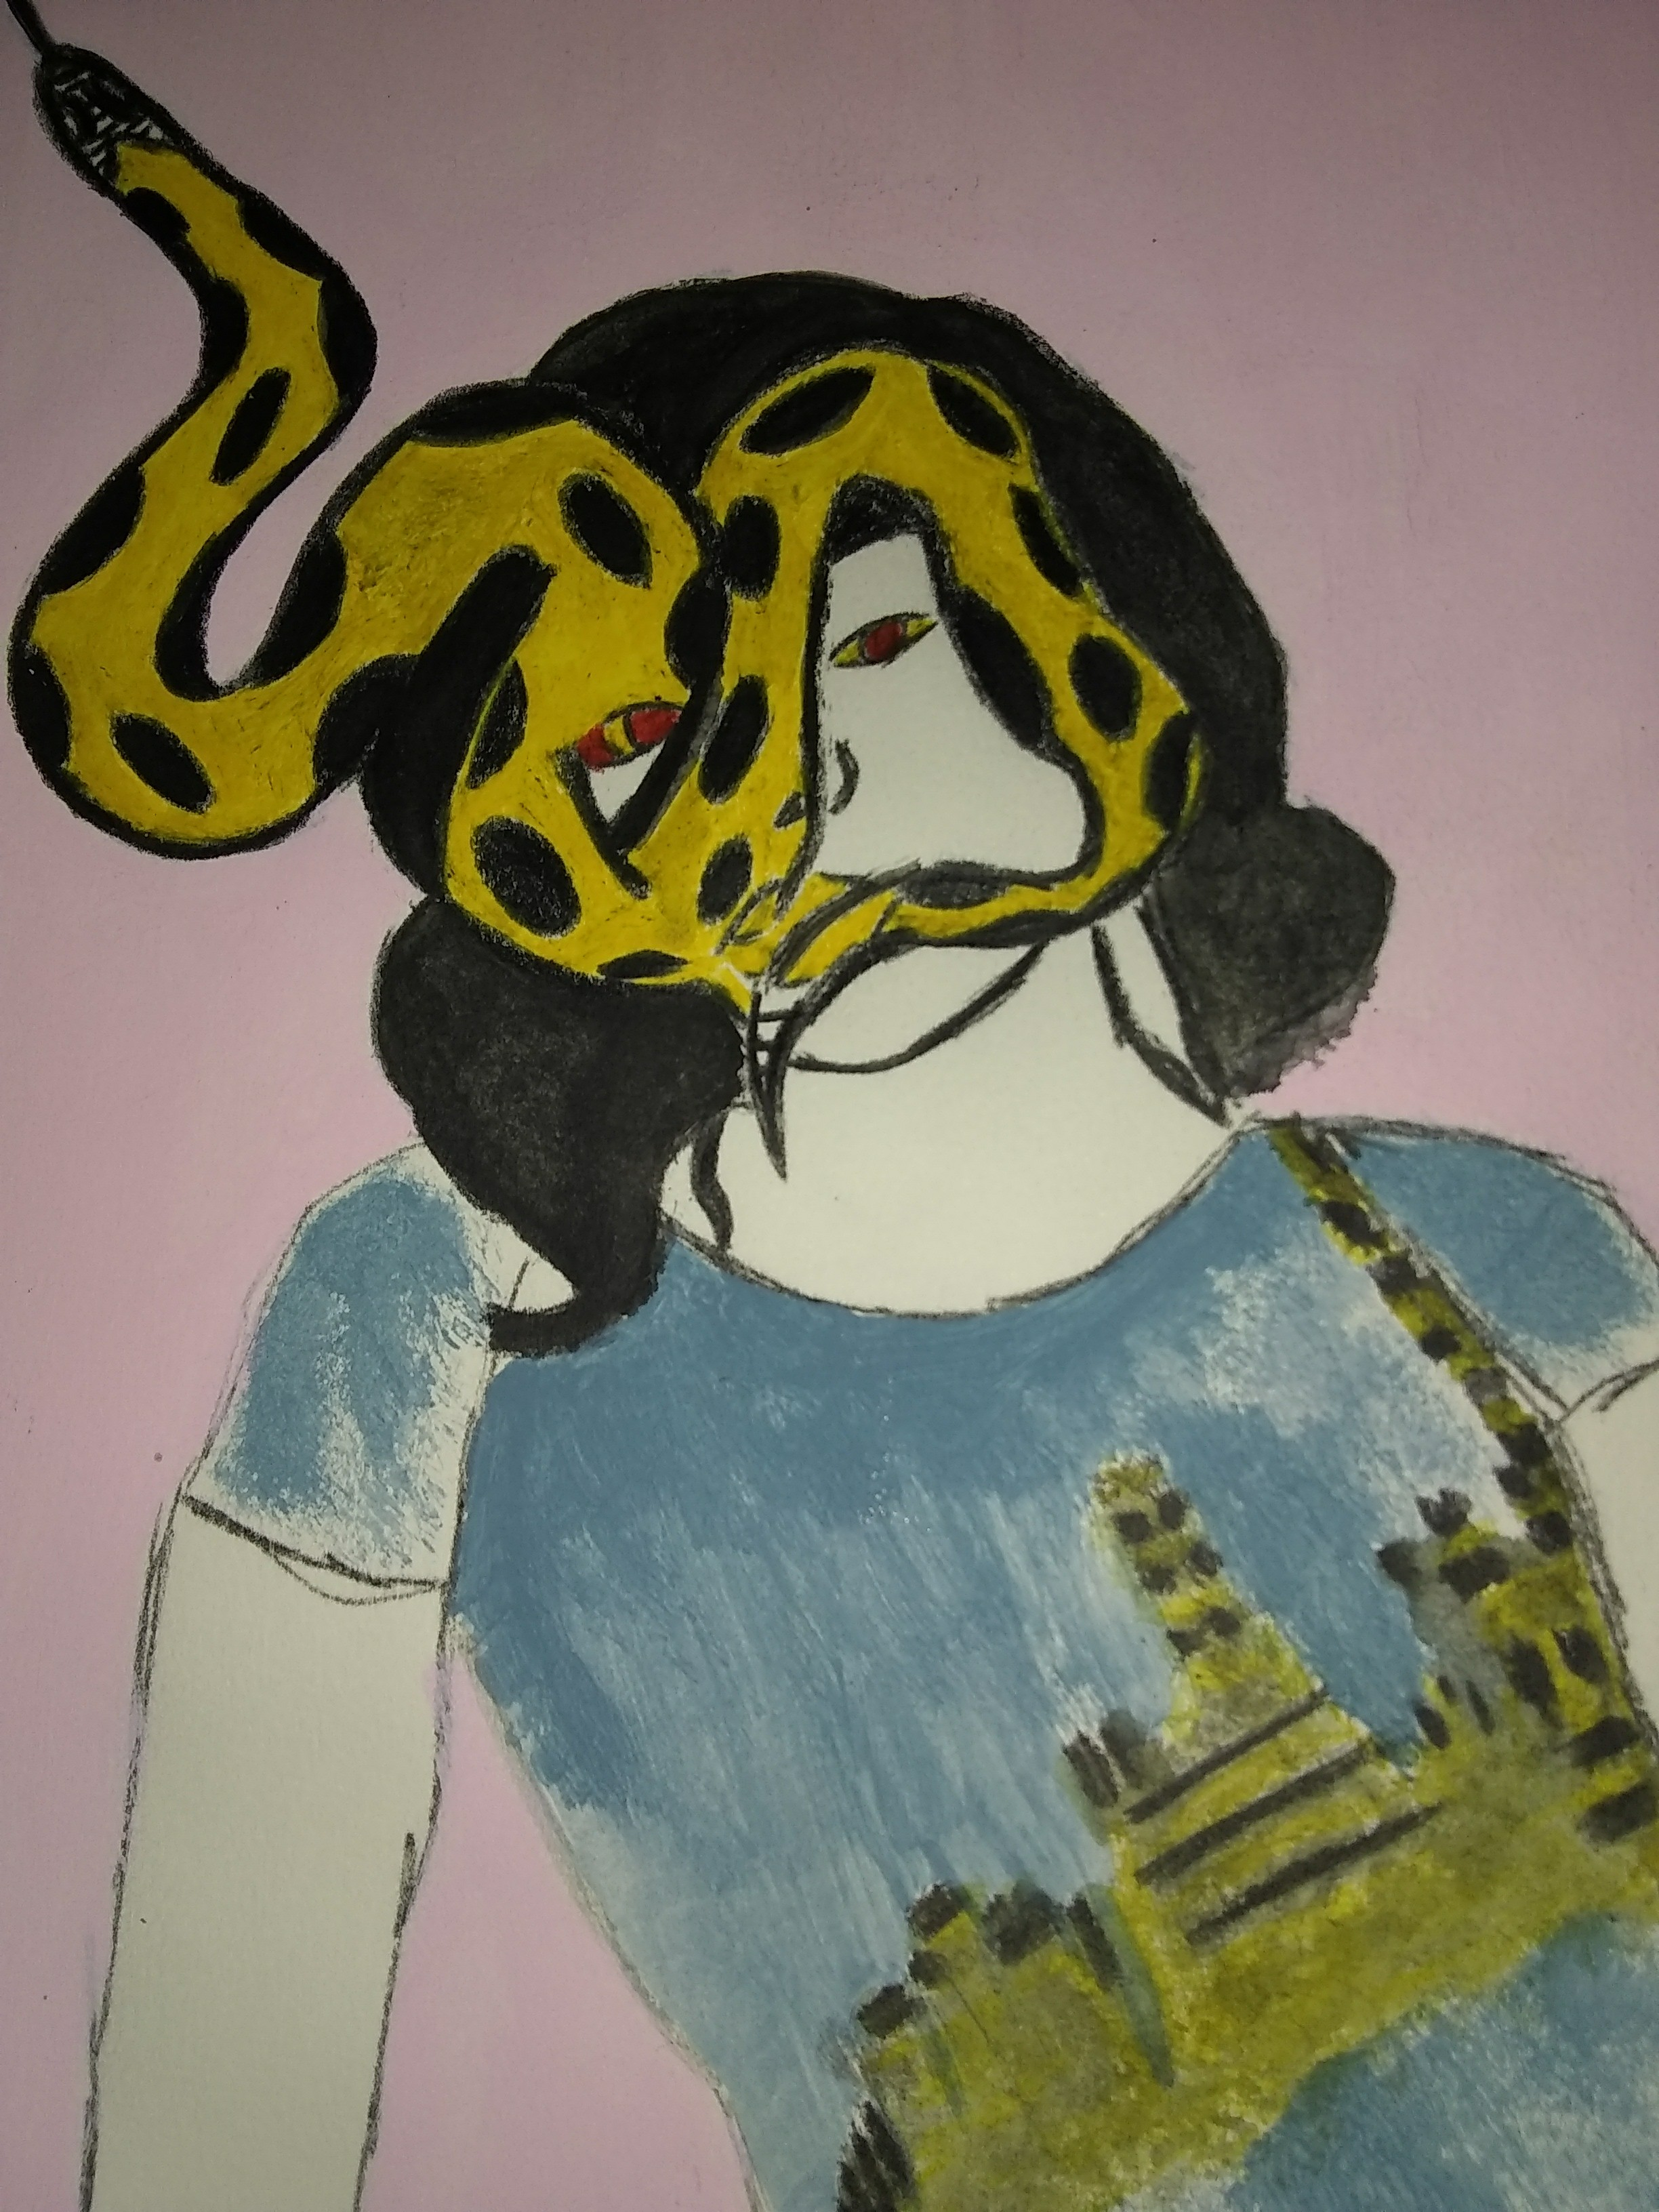 Snake, people, reptile, town, city, fashion, fantasy, pink, yellow, black, woman, portrait, modern, drawing, painting